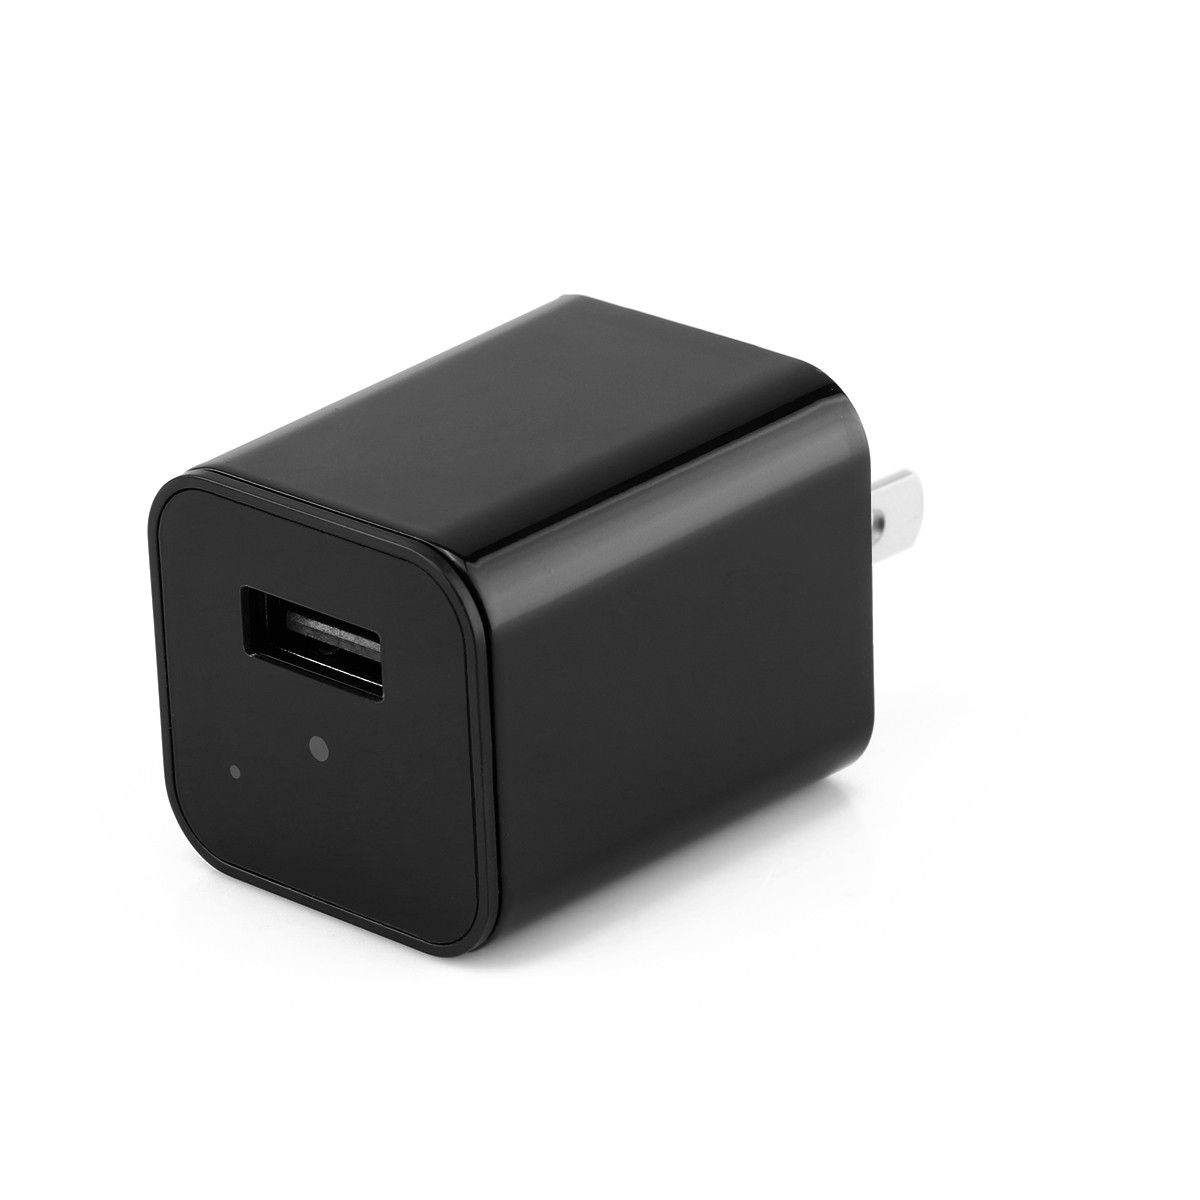 usb wall charger image by bestrecon on surveillance equipment on usb wall charger id=64656